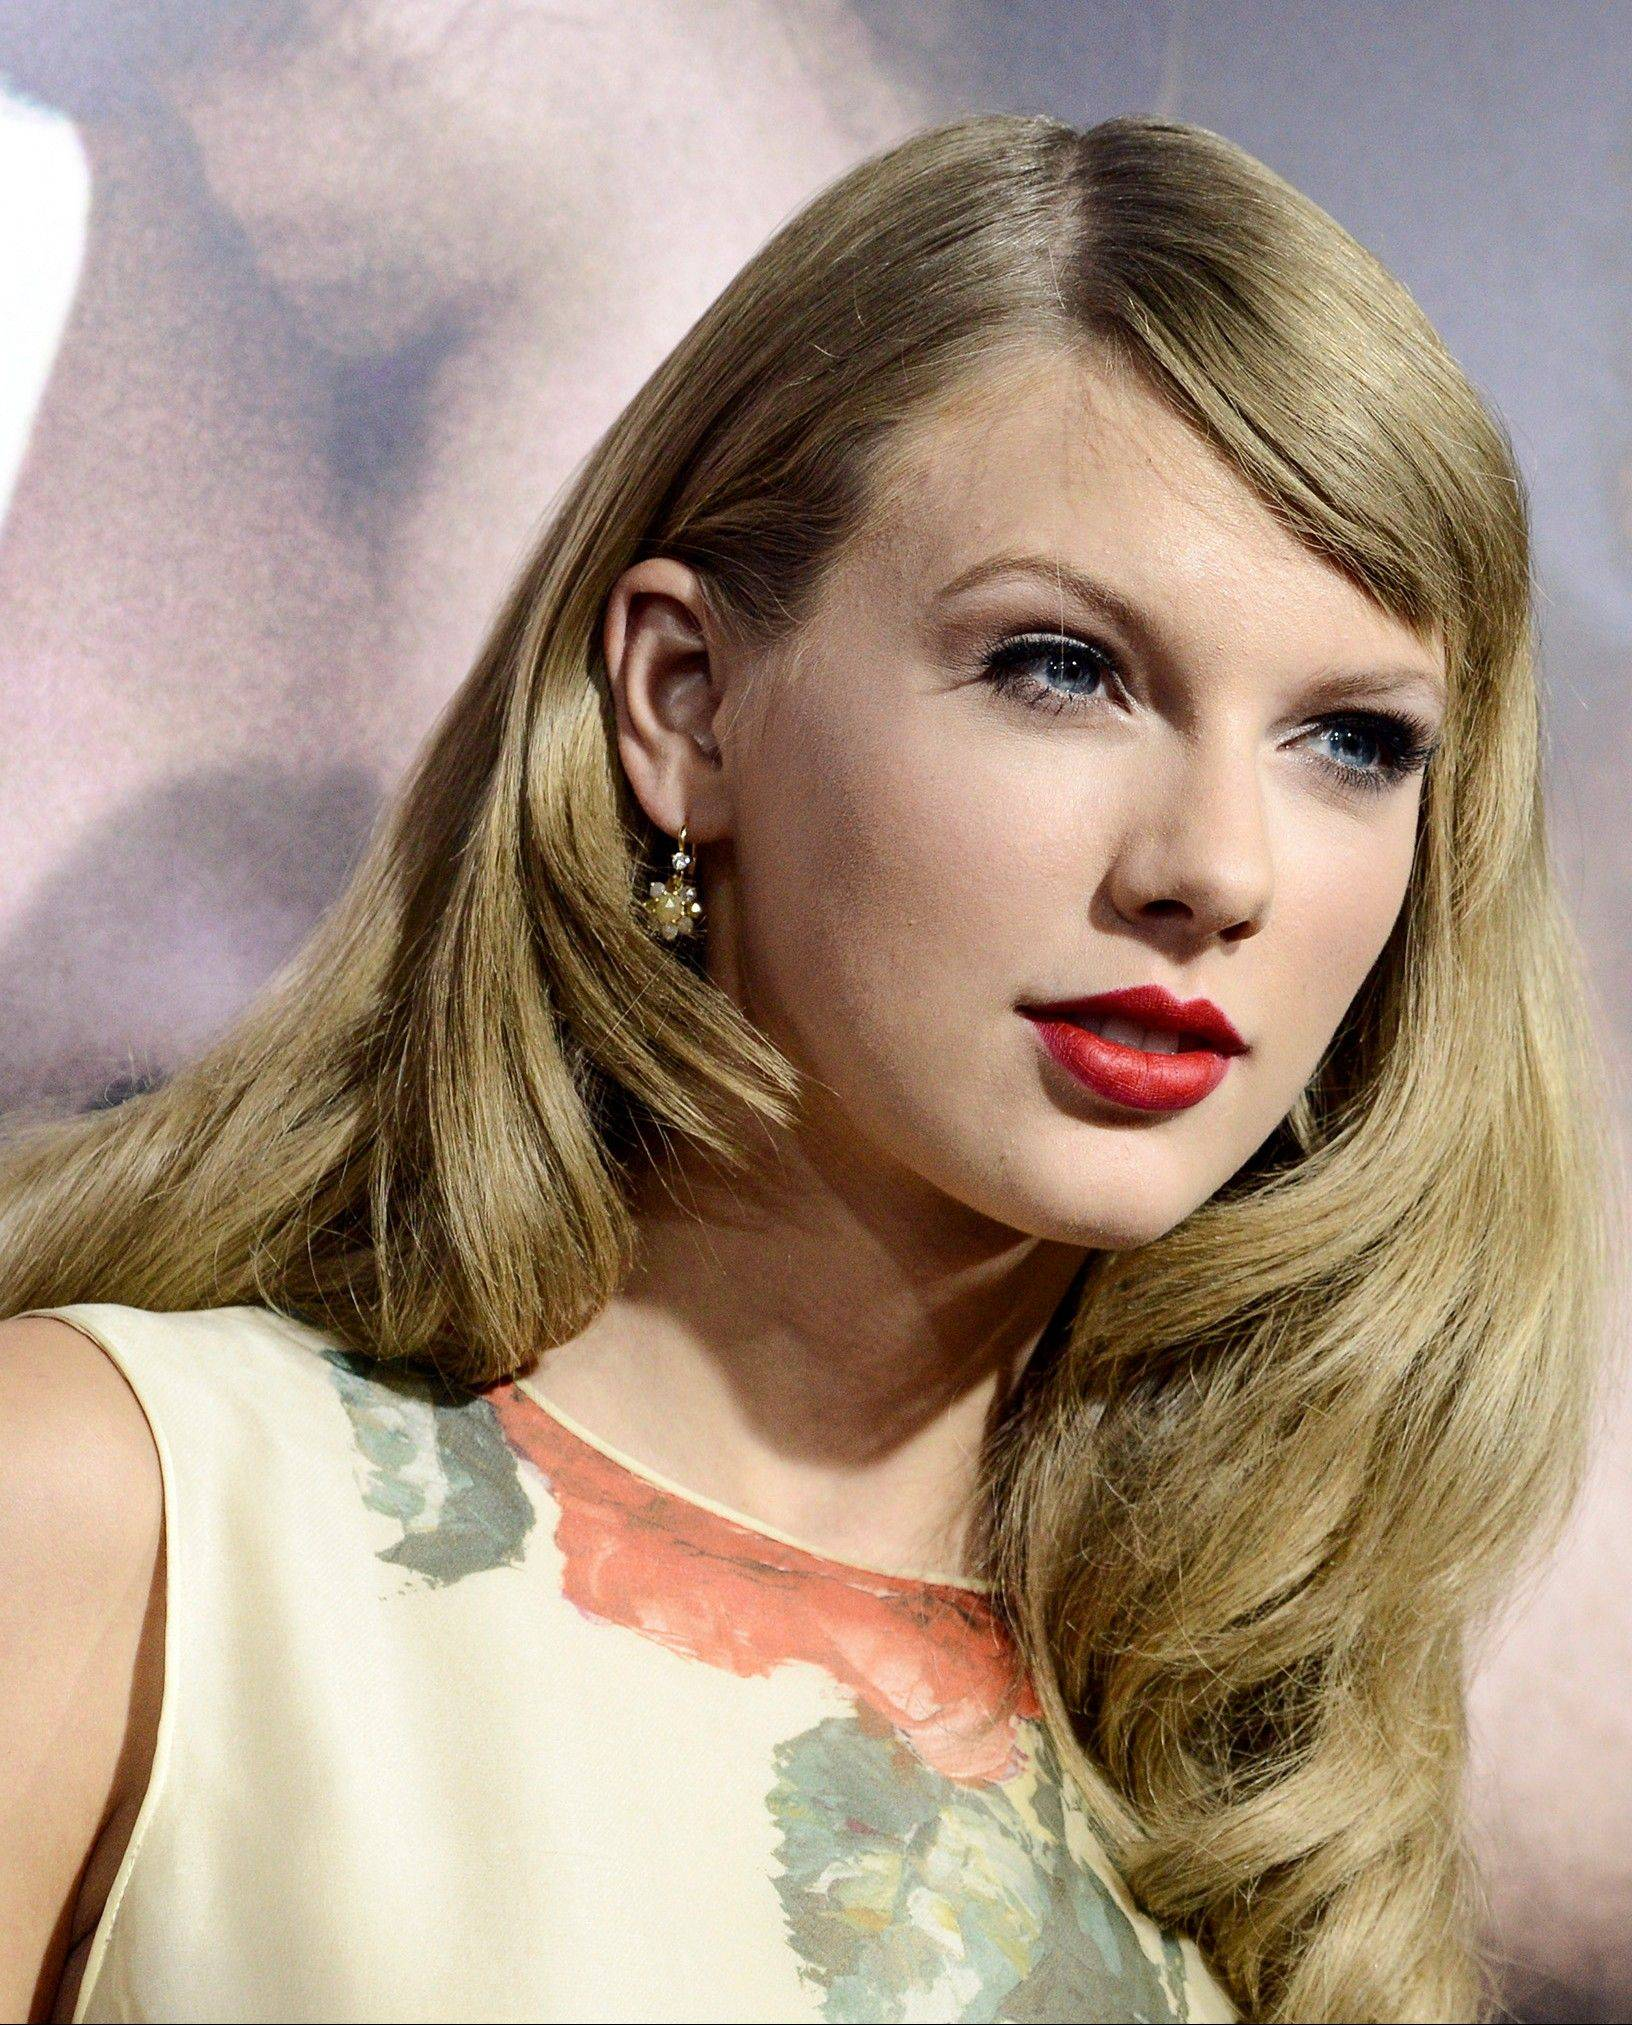 Taylor Swift is the top nominee for the $START_URL$American Country Awards;http://theacas.com$STOP_URL$.